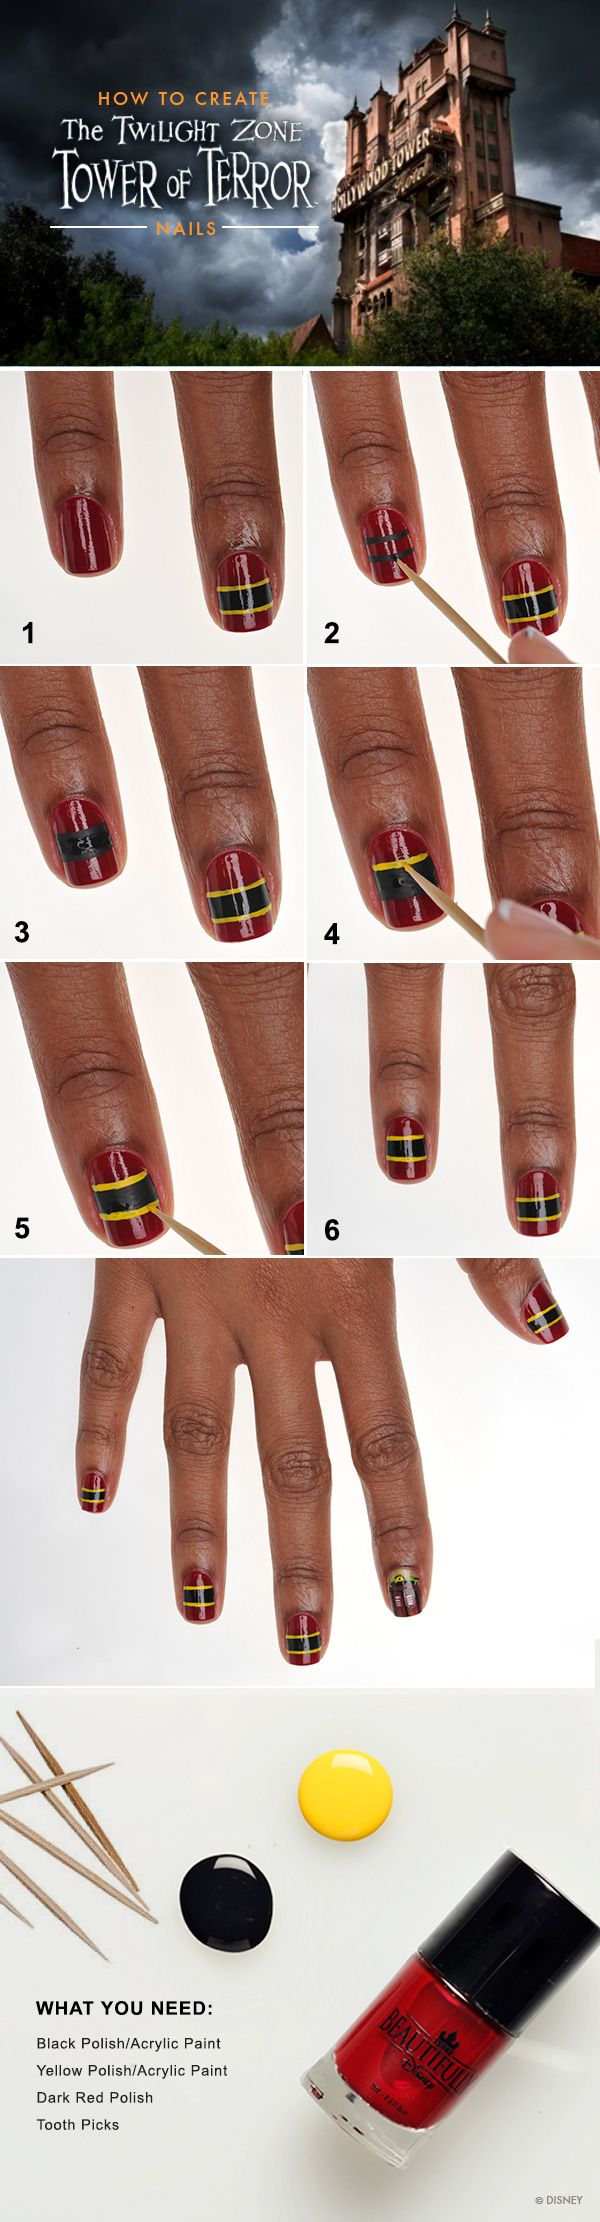 Show Your Disney Side: Tower of Terror Nail Tutorial